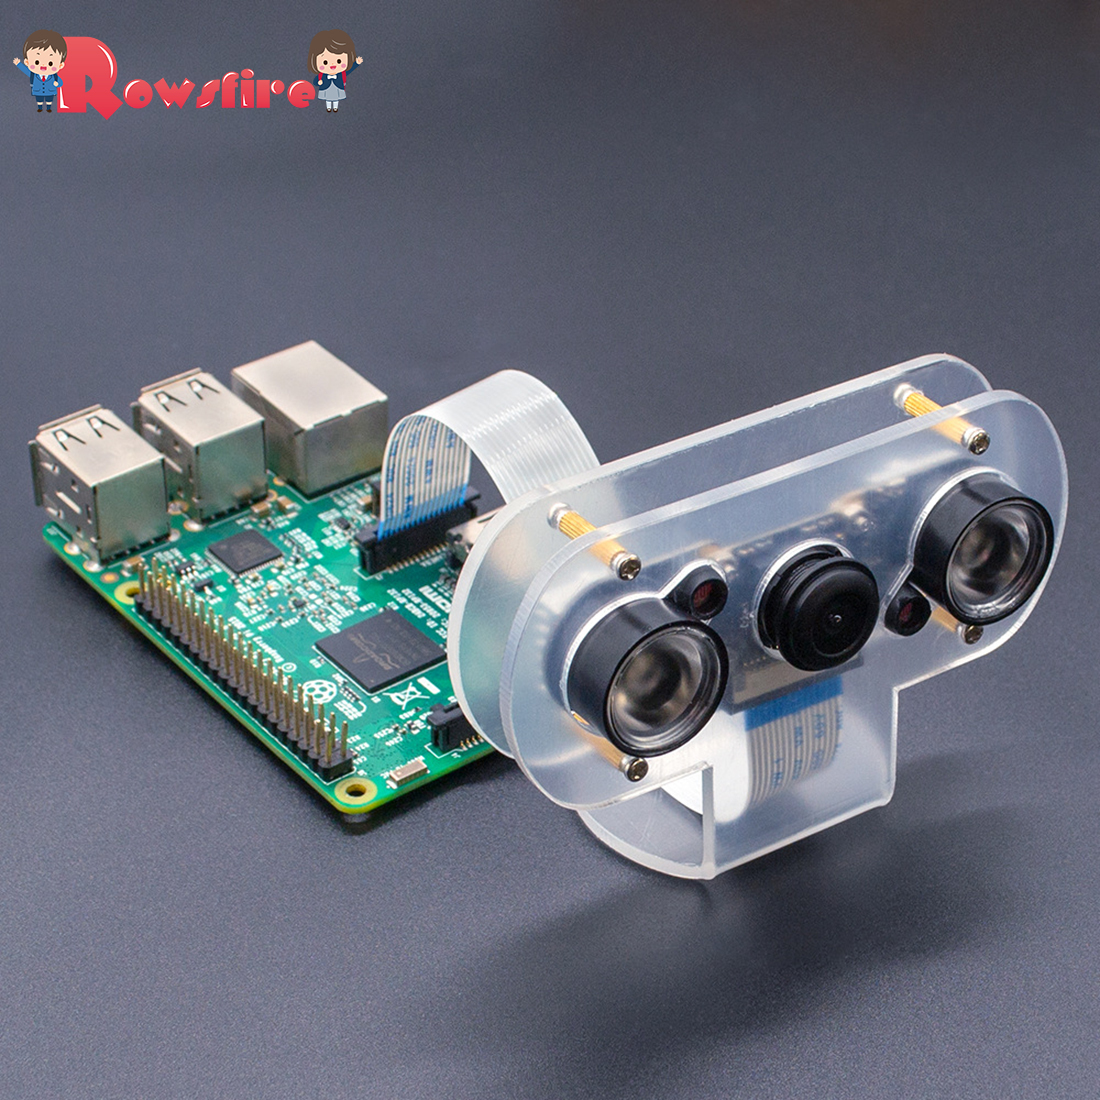 5MP 1080P Infrared Night Vision Fish-Eye Wide-Angle Camera Set With Acrylic Shell Cooling Fin For Raspberry Pi 4B/3B+